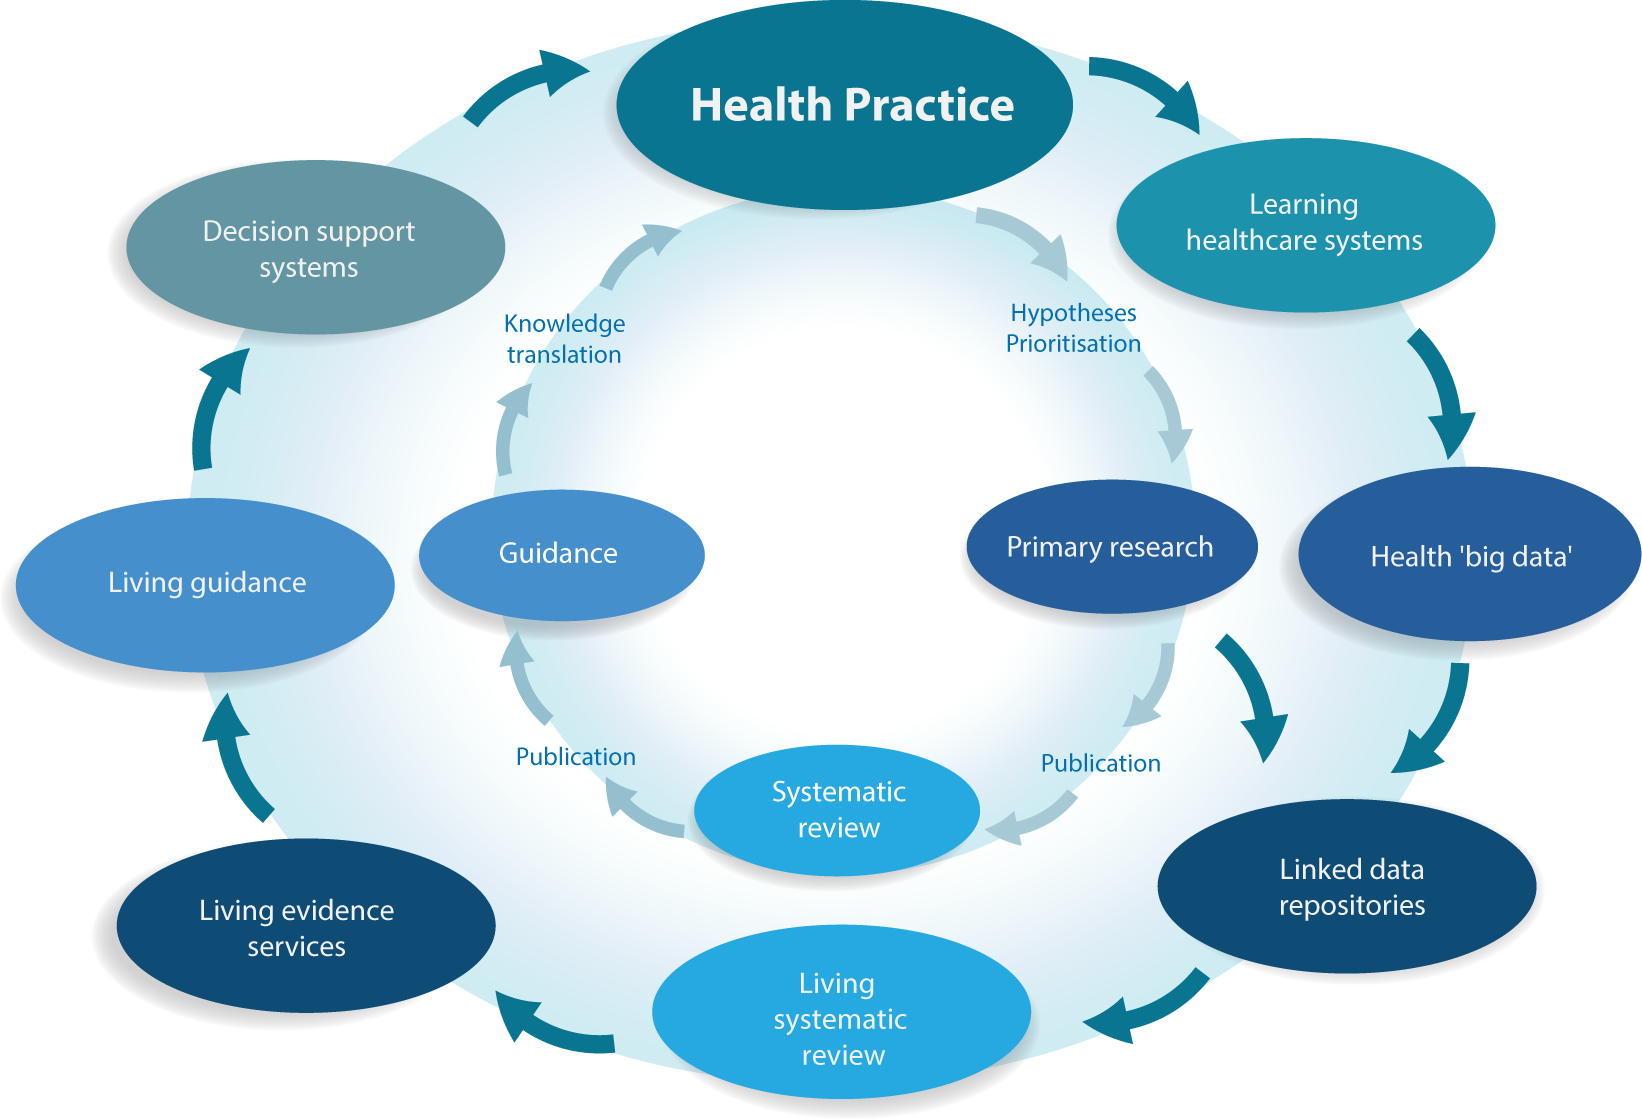 Current and emerging health knowledge ecosystems.